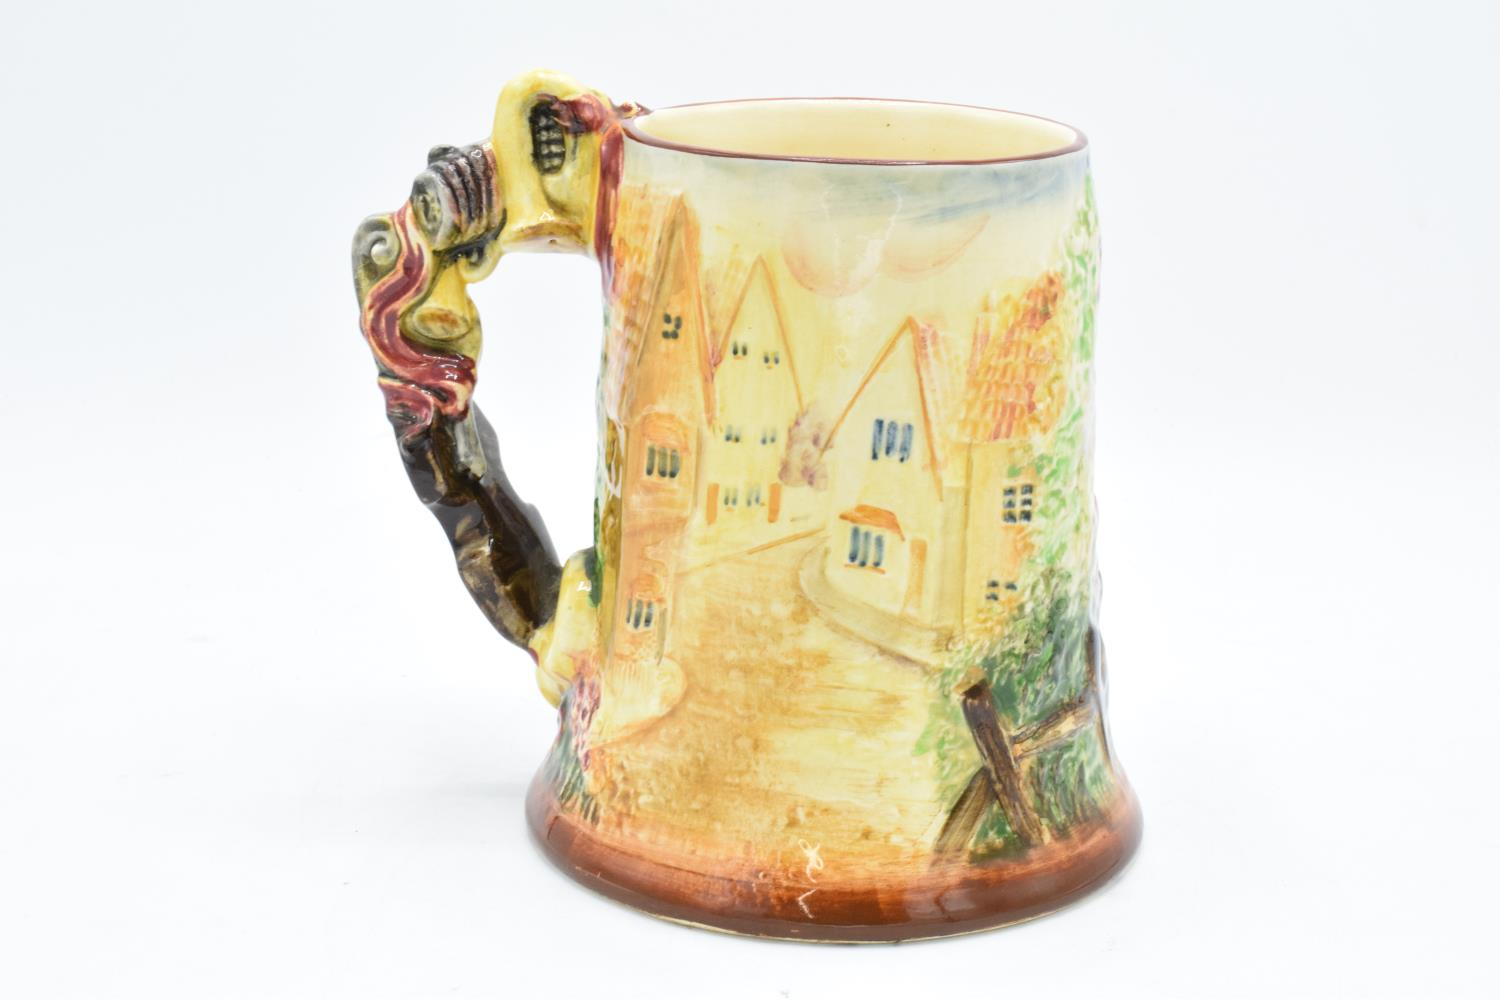 An embossed pottery musical tankard in The Floral Dance design, assumed to be Royal Winton/ - Image 2 of 3